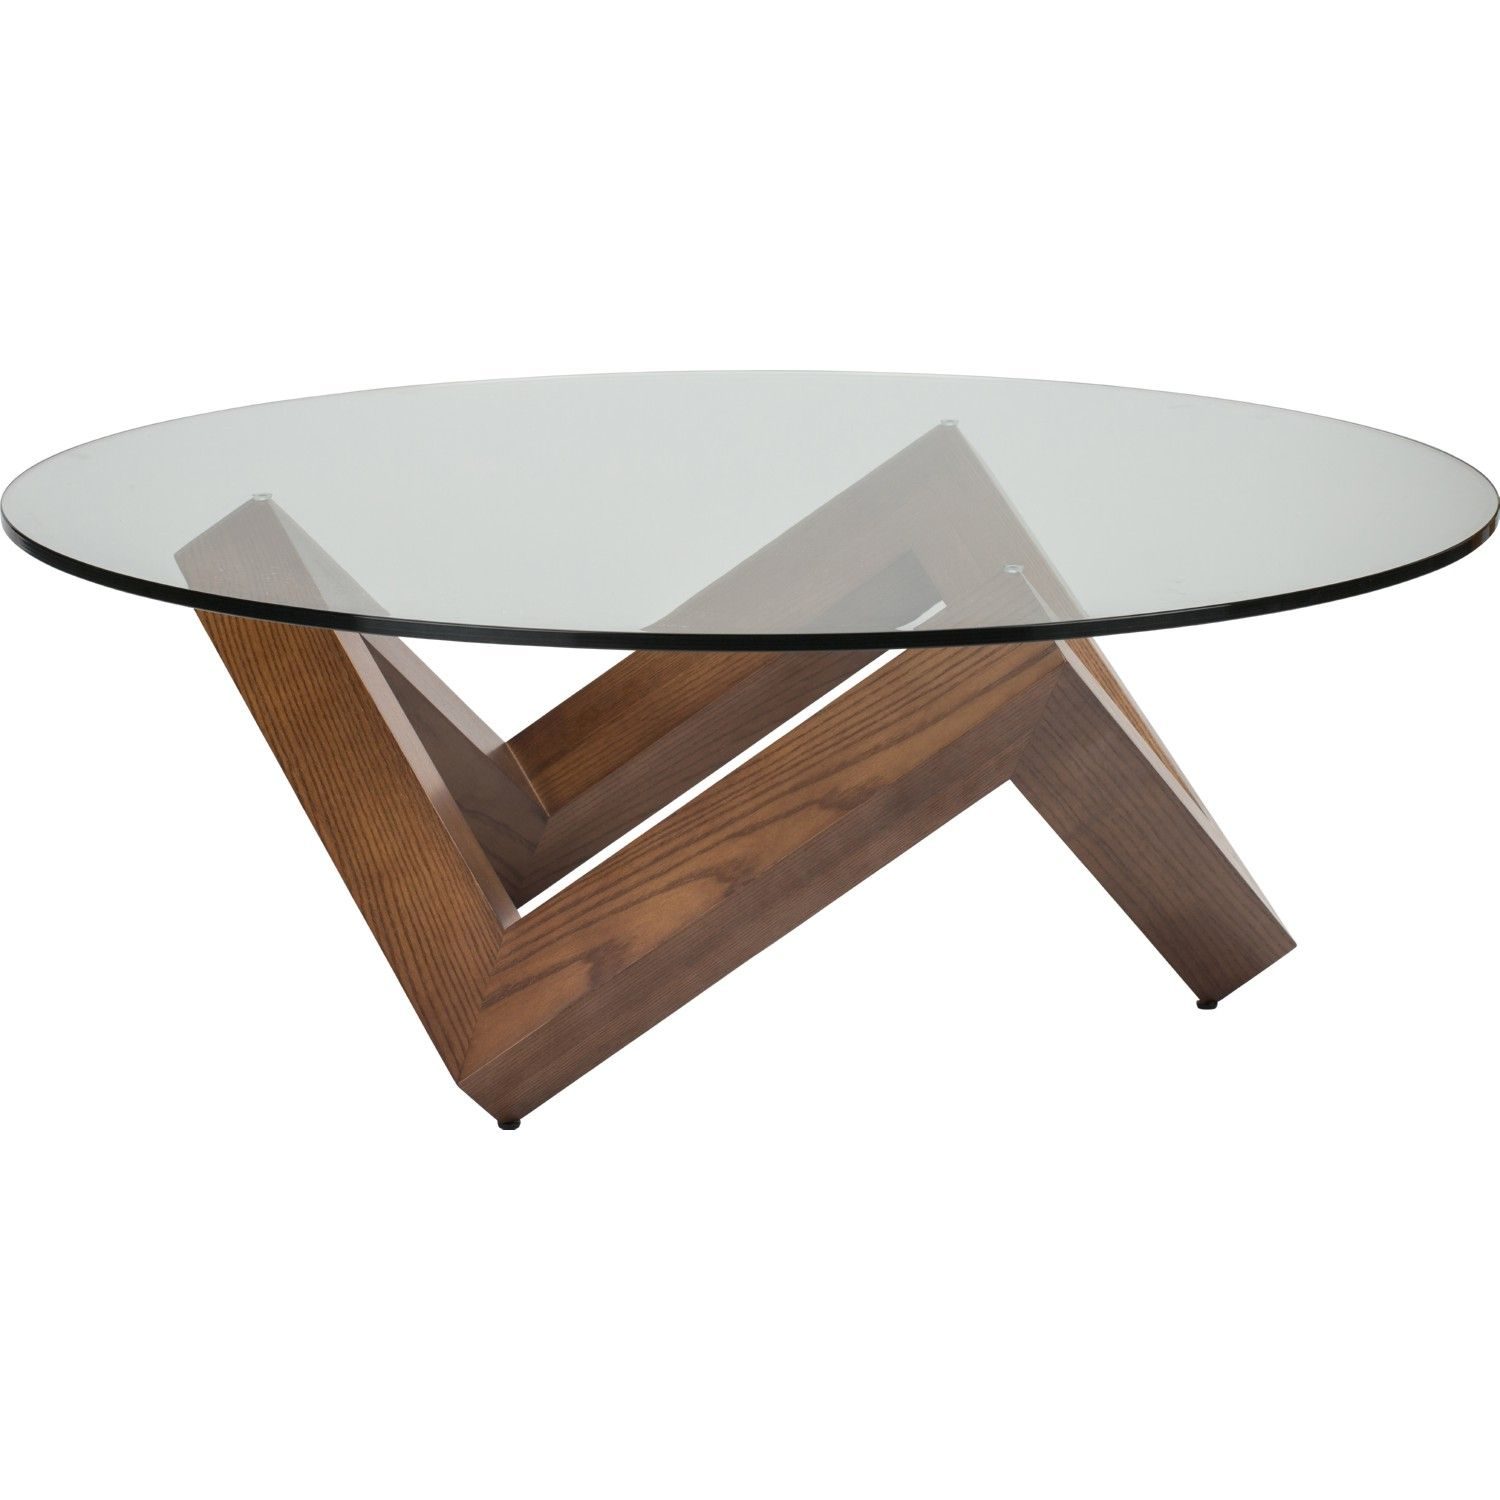 Nuevo Como 41 Quot Coffee Table Round Clear Glass Top On Geometric Walnut Base Glass Wood Table Coffee Table Walnut Coffee Table [ 1500 x 1500 Pixel ]